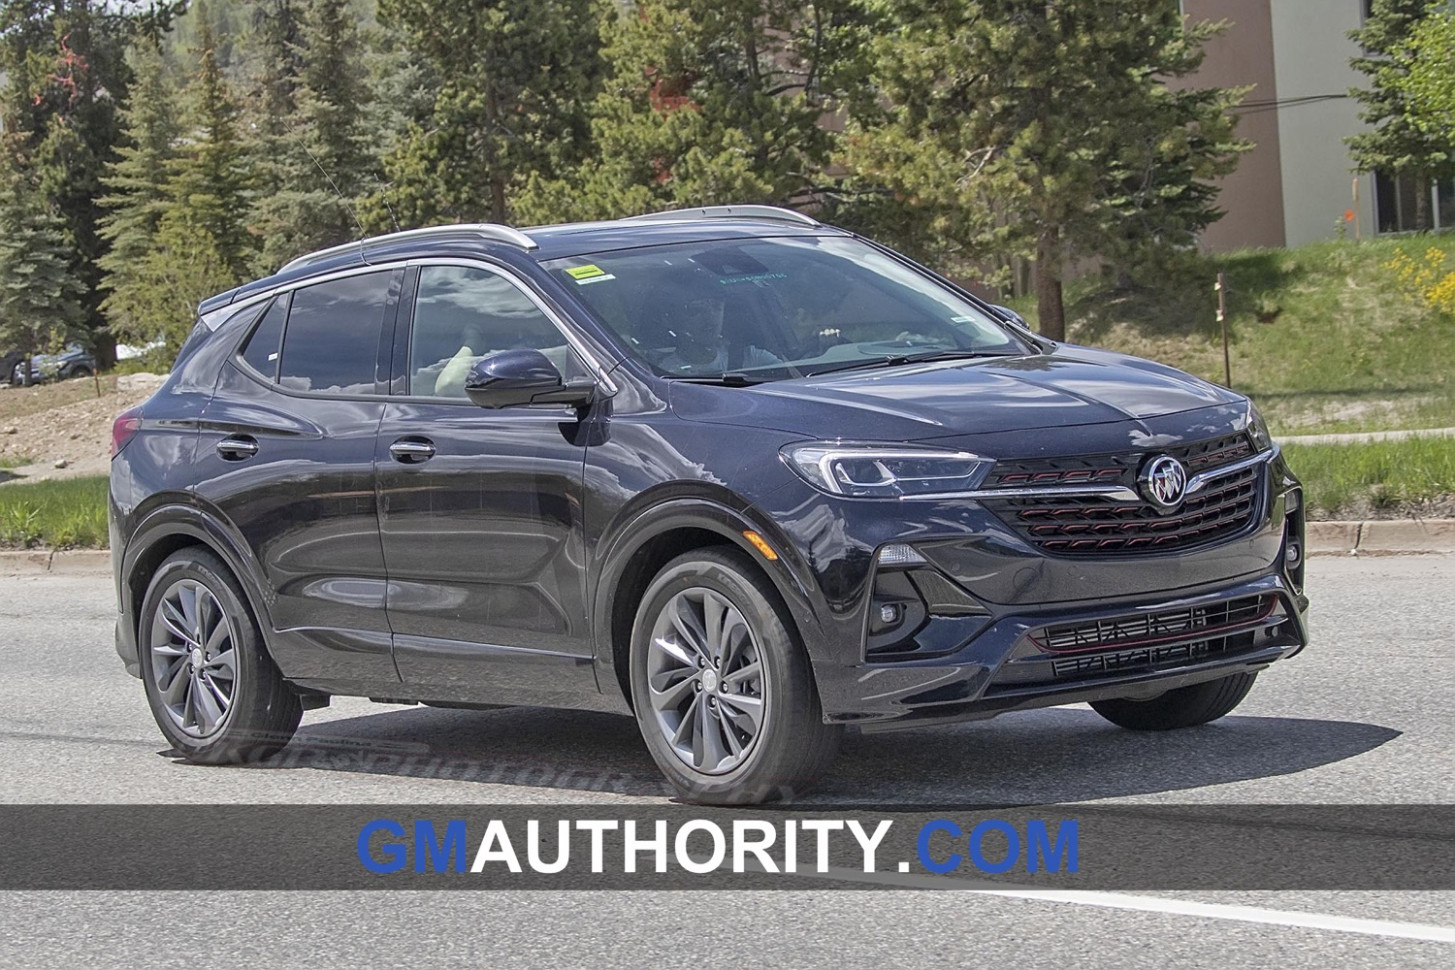 Spesification When Does The 2022 Buick Encore Come Out